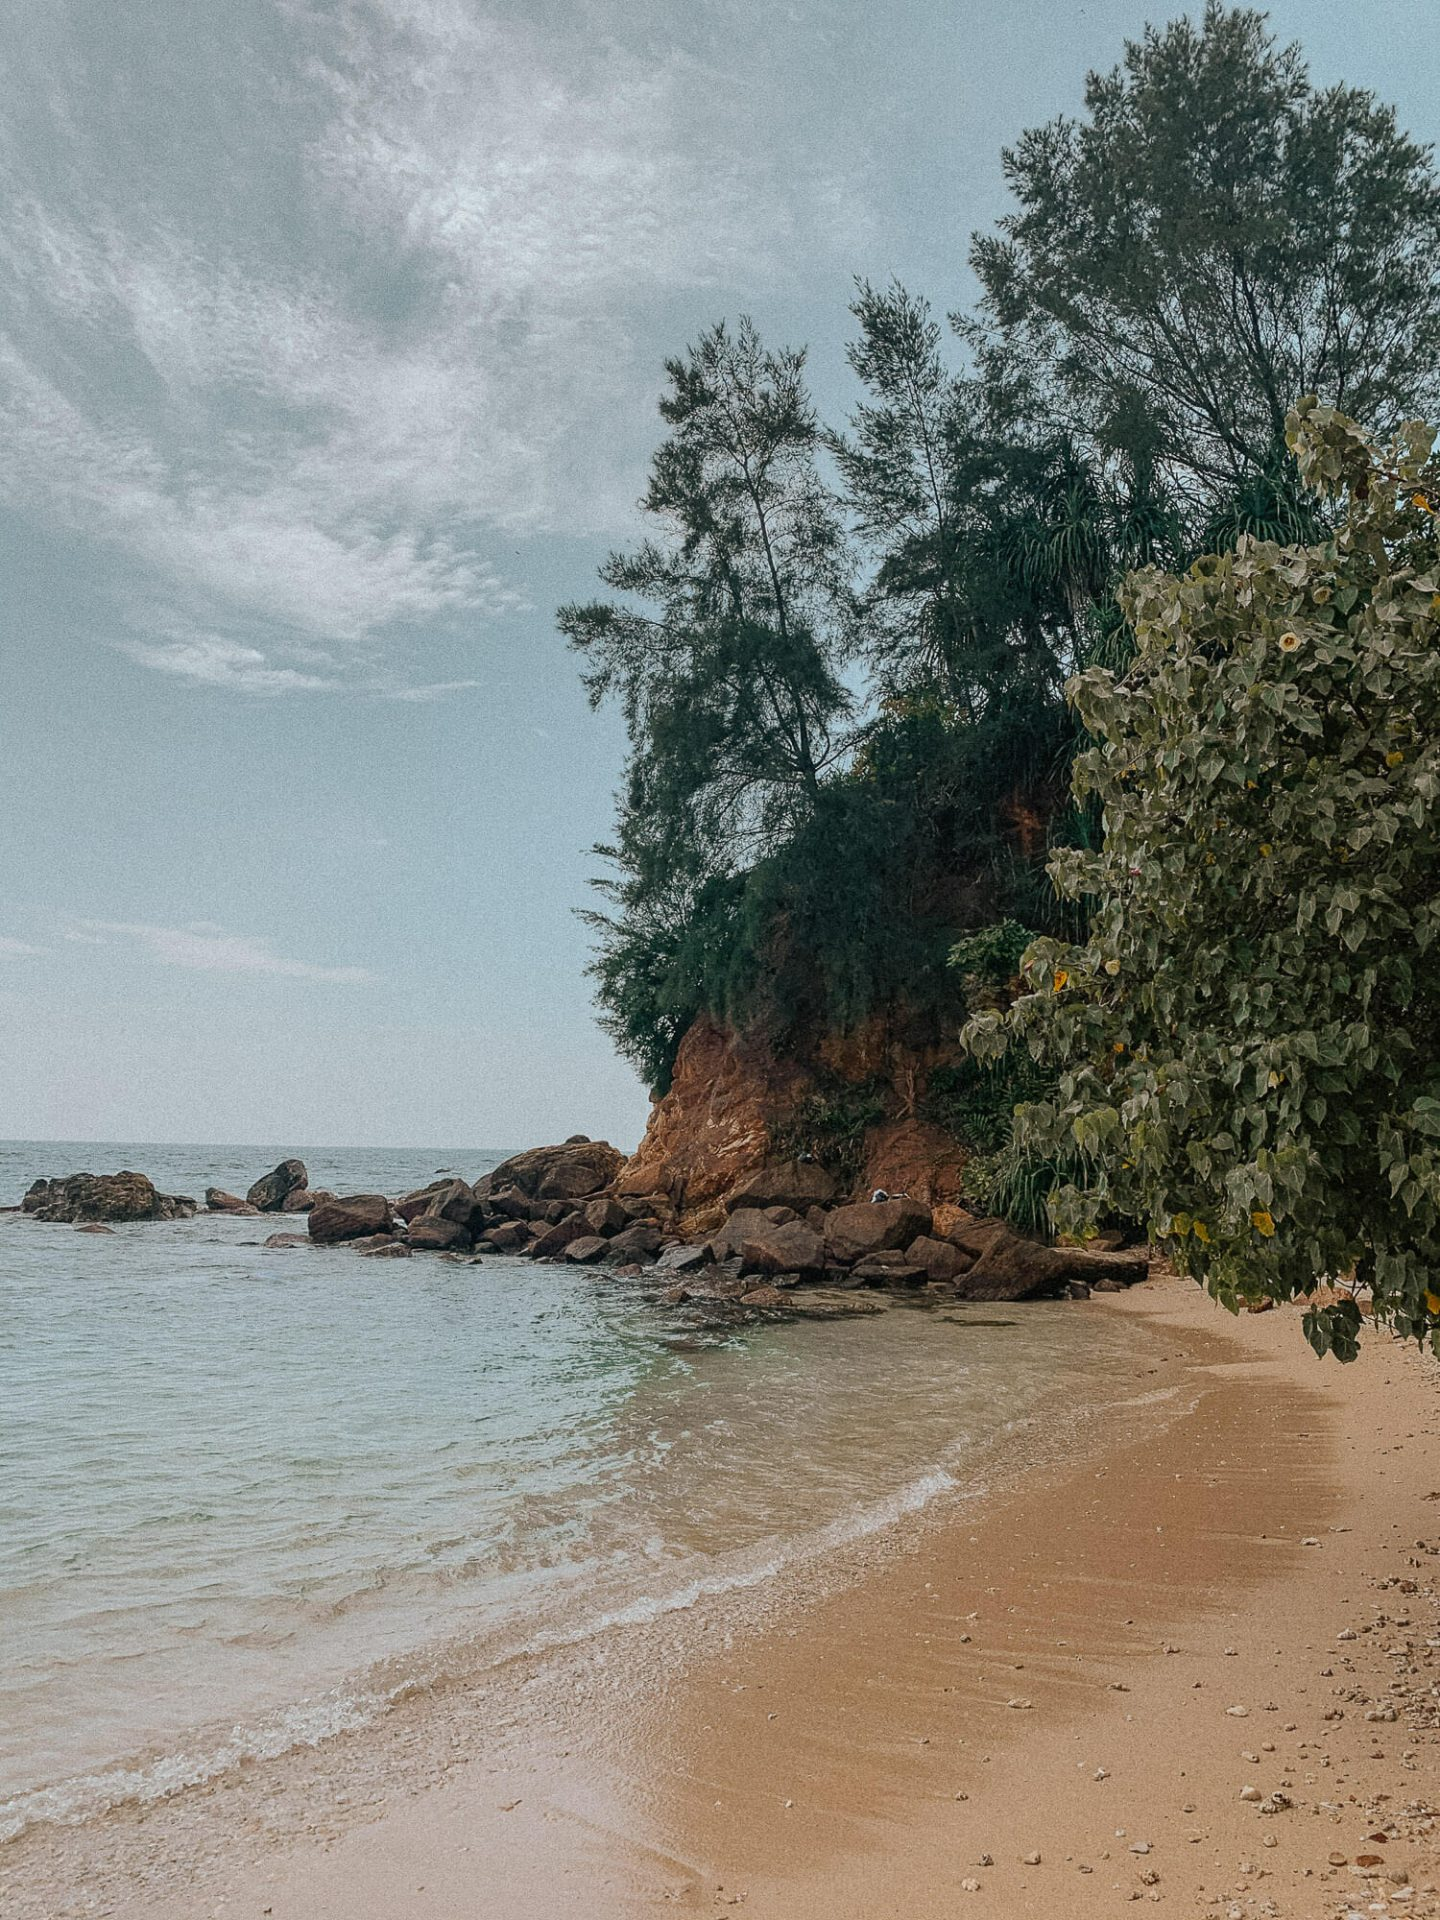 What to pack for Sri Lanka beaches